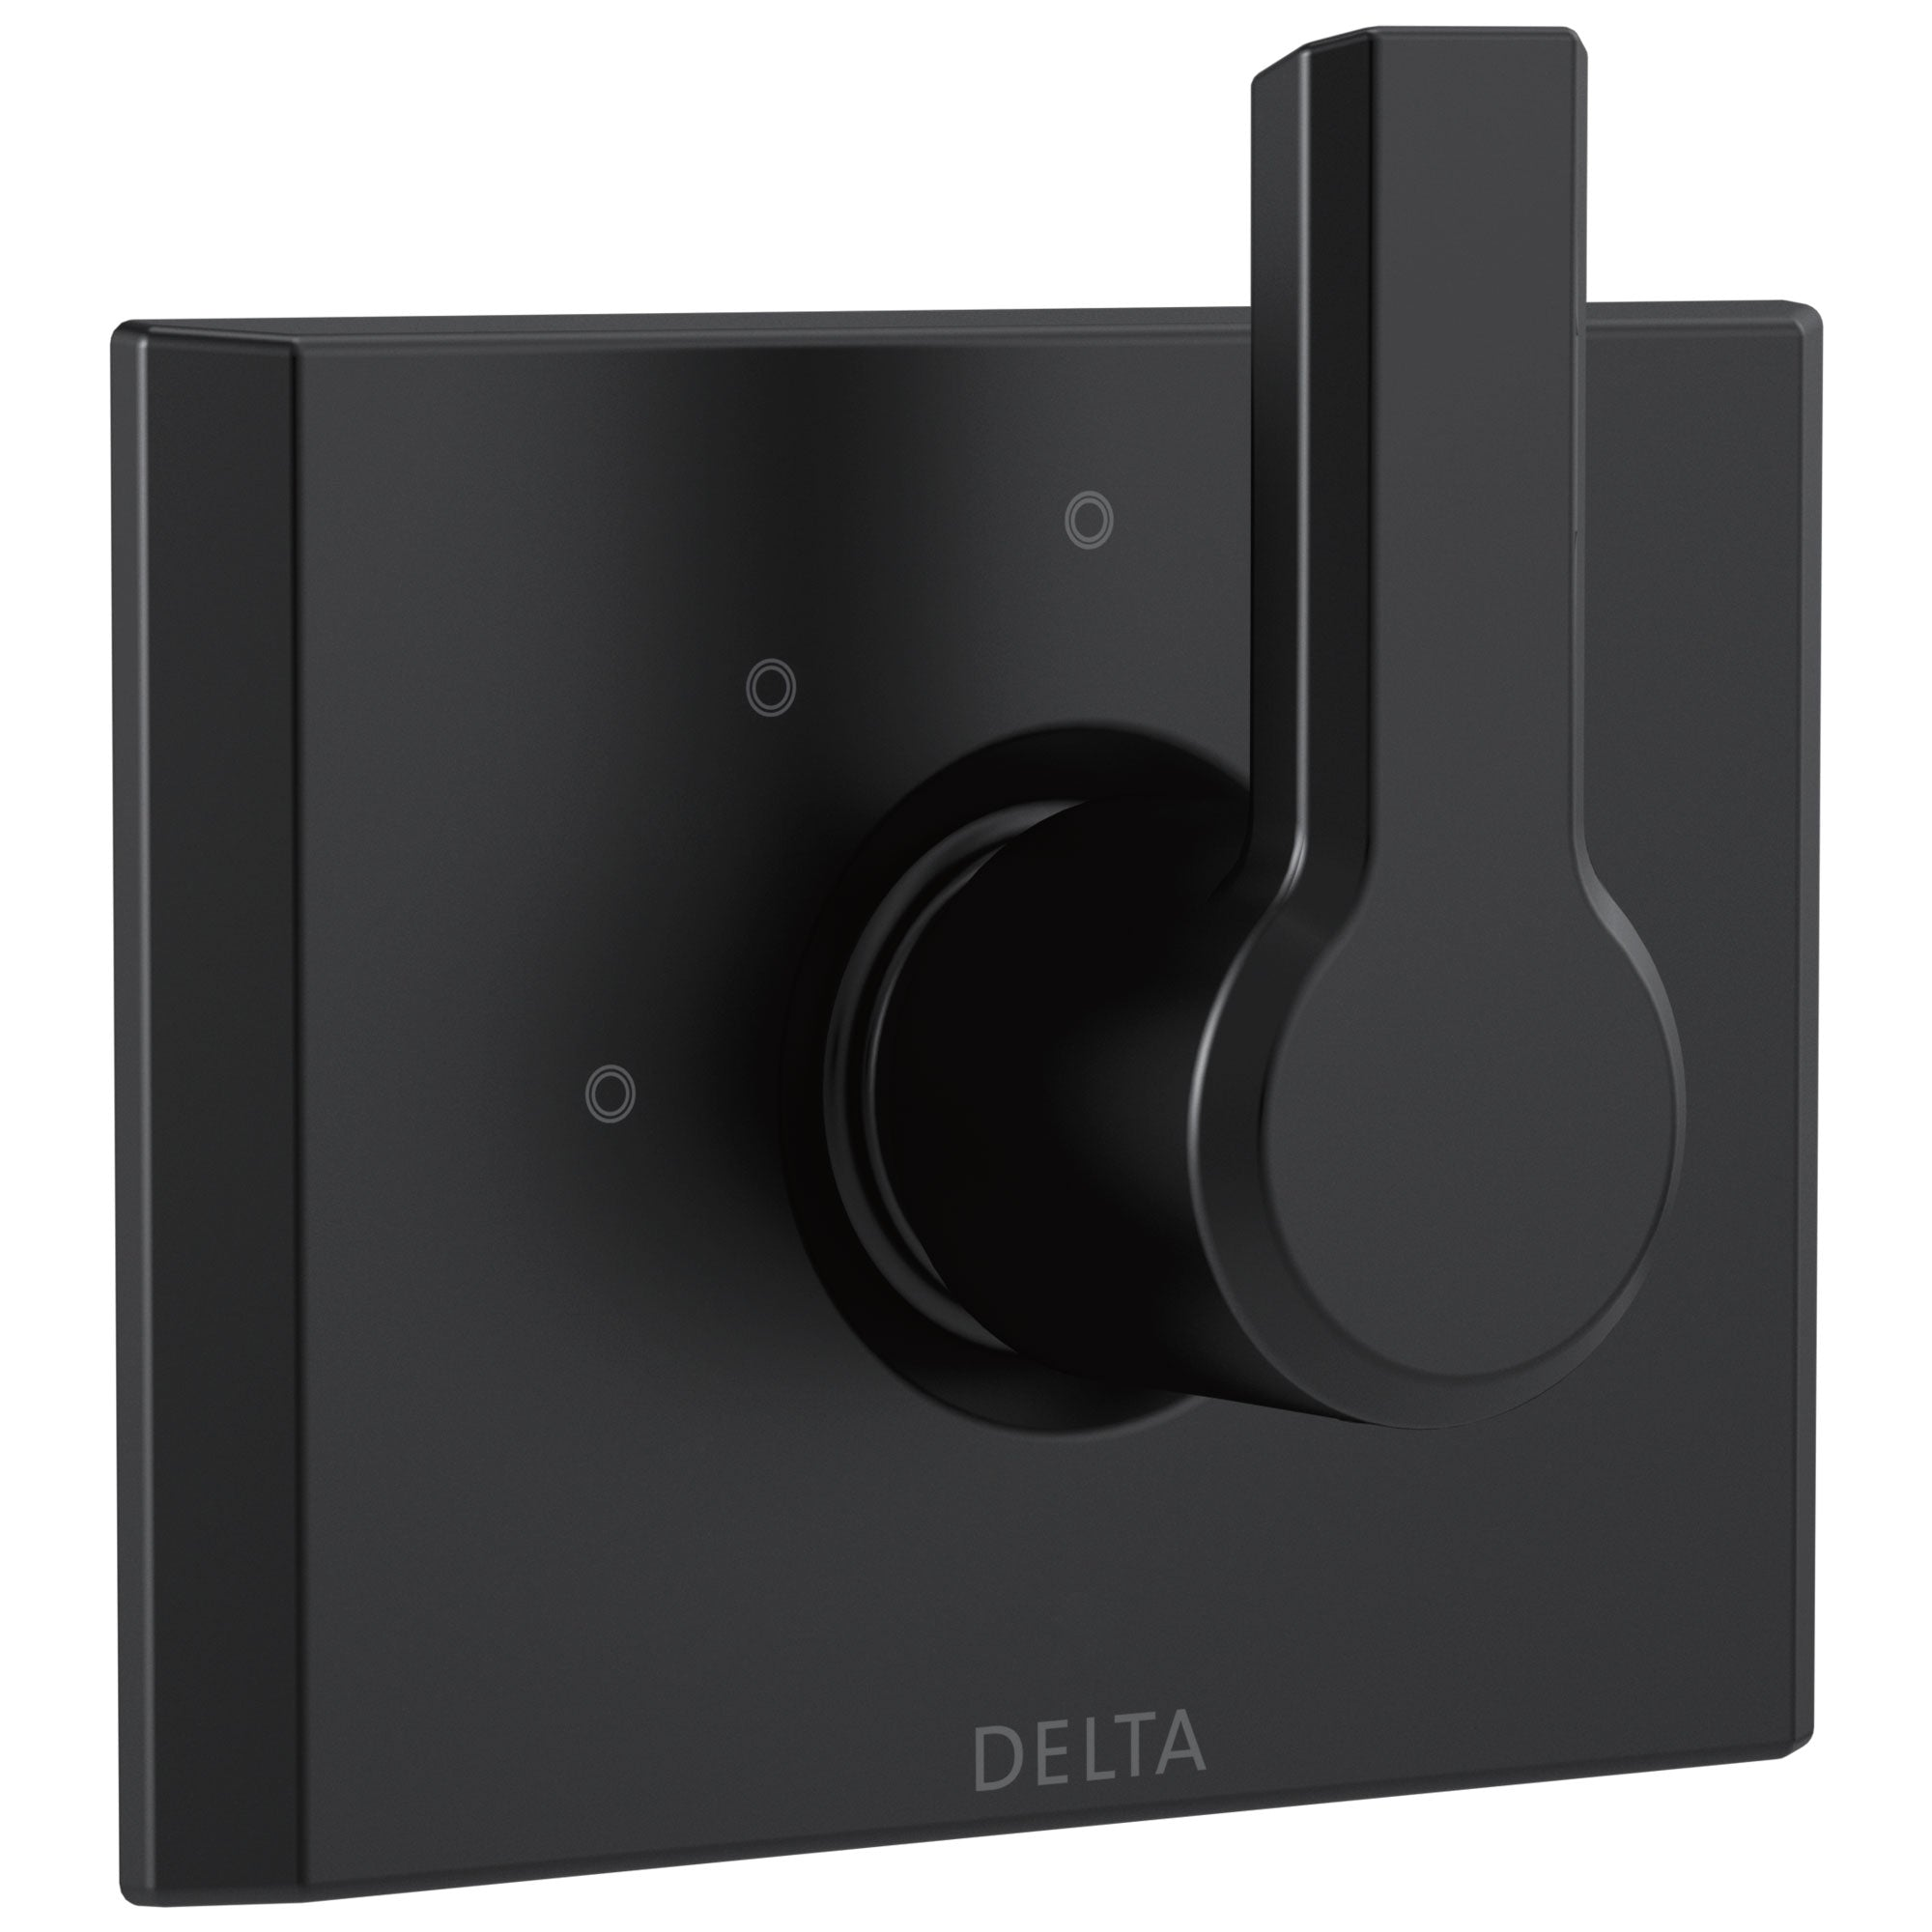 Delta Pivotal Matte Black Finish 3-Setting 2-Port Shower Diverter Trim Kit (Requires Valve) DT11899BL